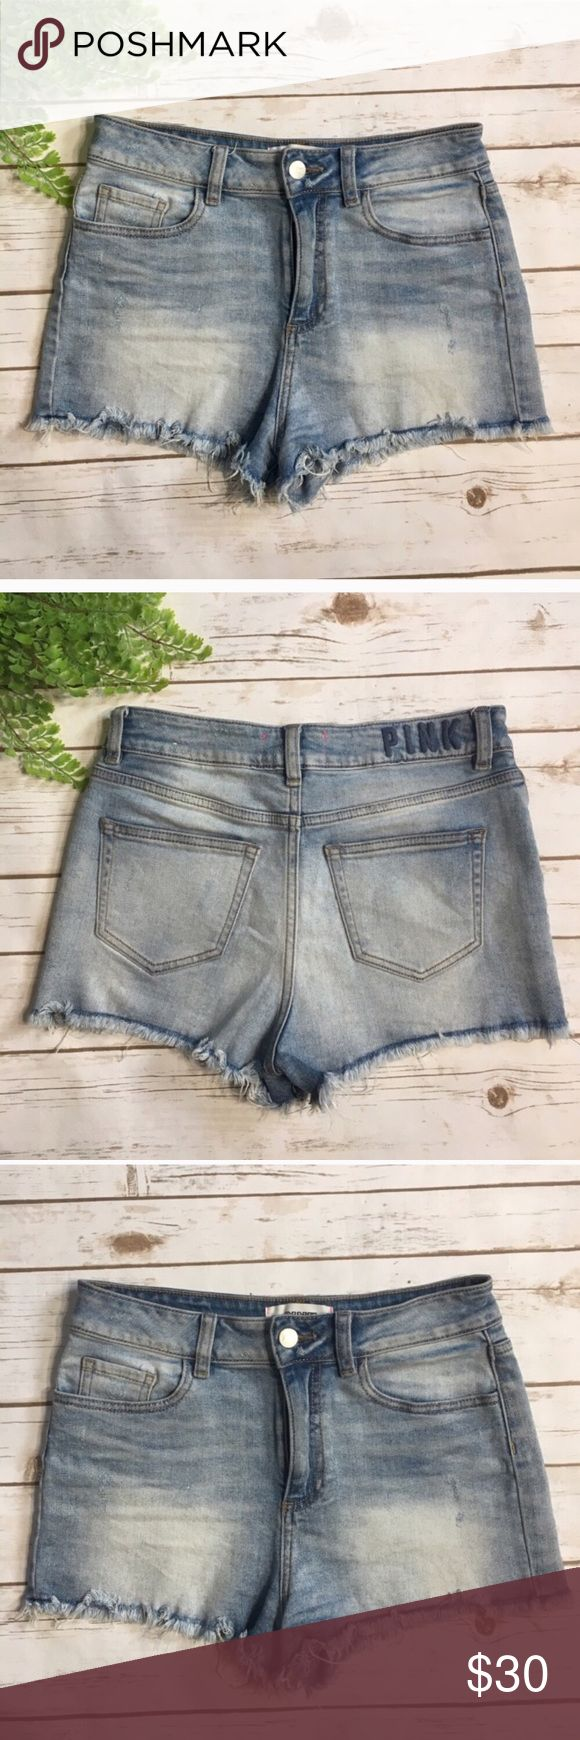 VS PINK Distressed Denim Shorts ☀️ Distressed denim shorts by Victoria's Secret Pink. Shorts are size 4 and fabric content is 98% cotton, 2% elastane. Shorts have a distressed look and frayed bottoms.   Measurements approximately:  🍍Waist: 28 inches 🍍Inseam: 2 inches PINK Victoria's Secret Shorts Jean Shorts